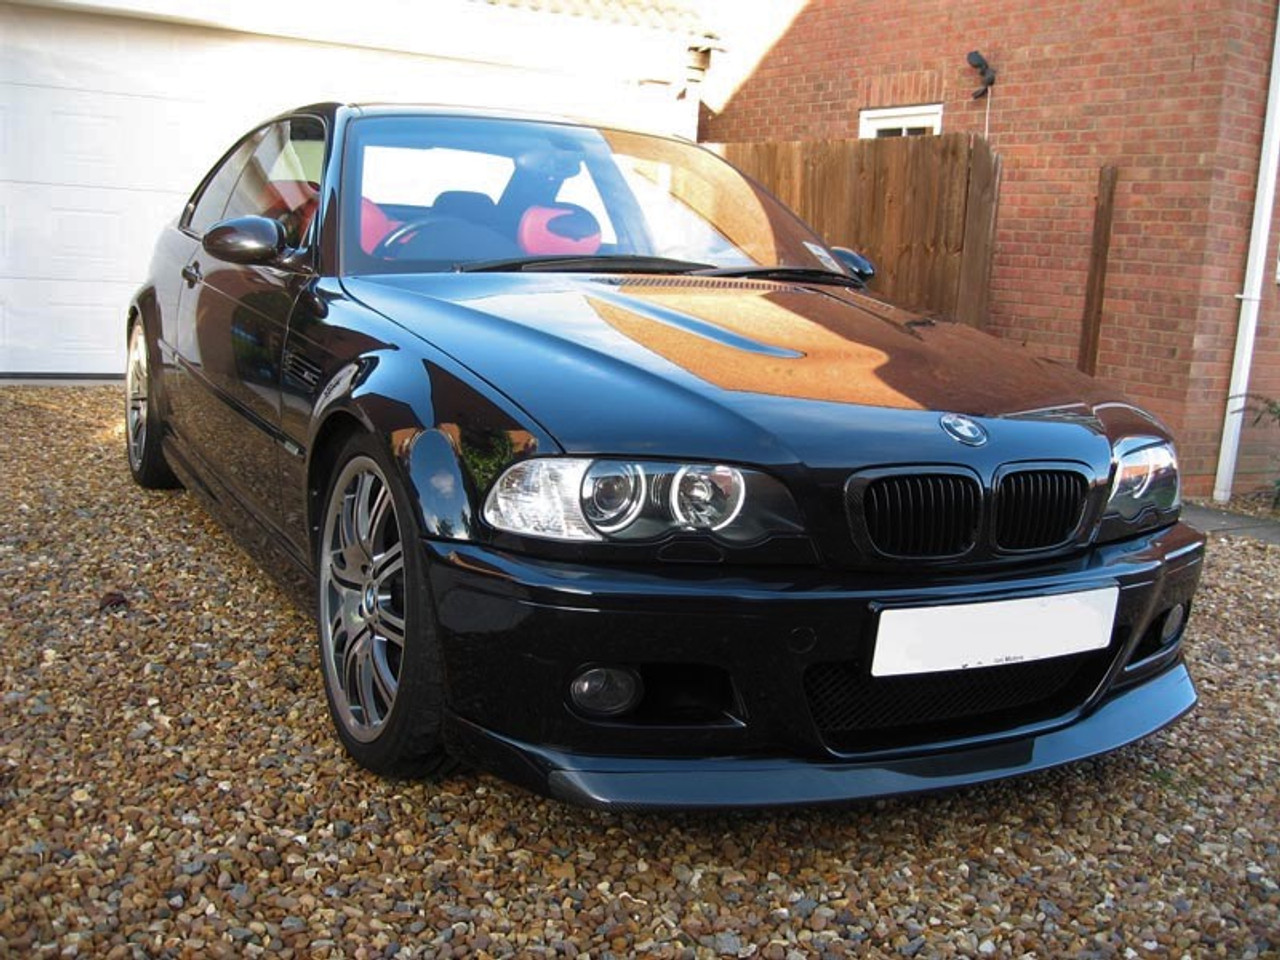 Gloss Black Kidney Grilles E46 Coupe Convertible 99 03 Pre Facelift Including E46 M3 01 06